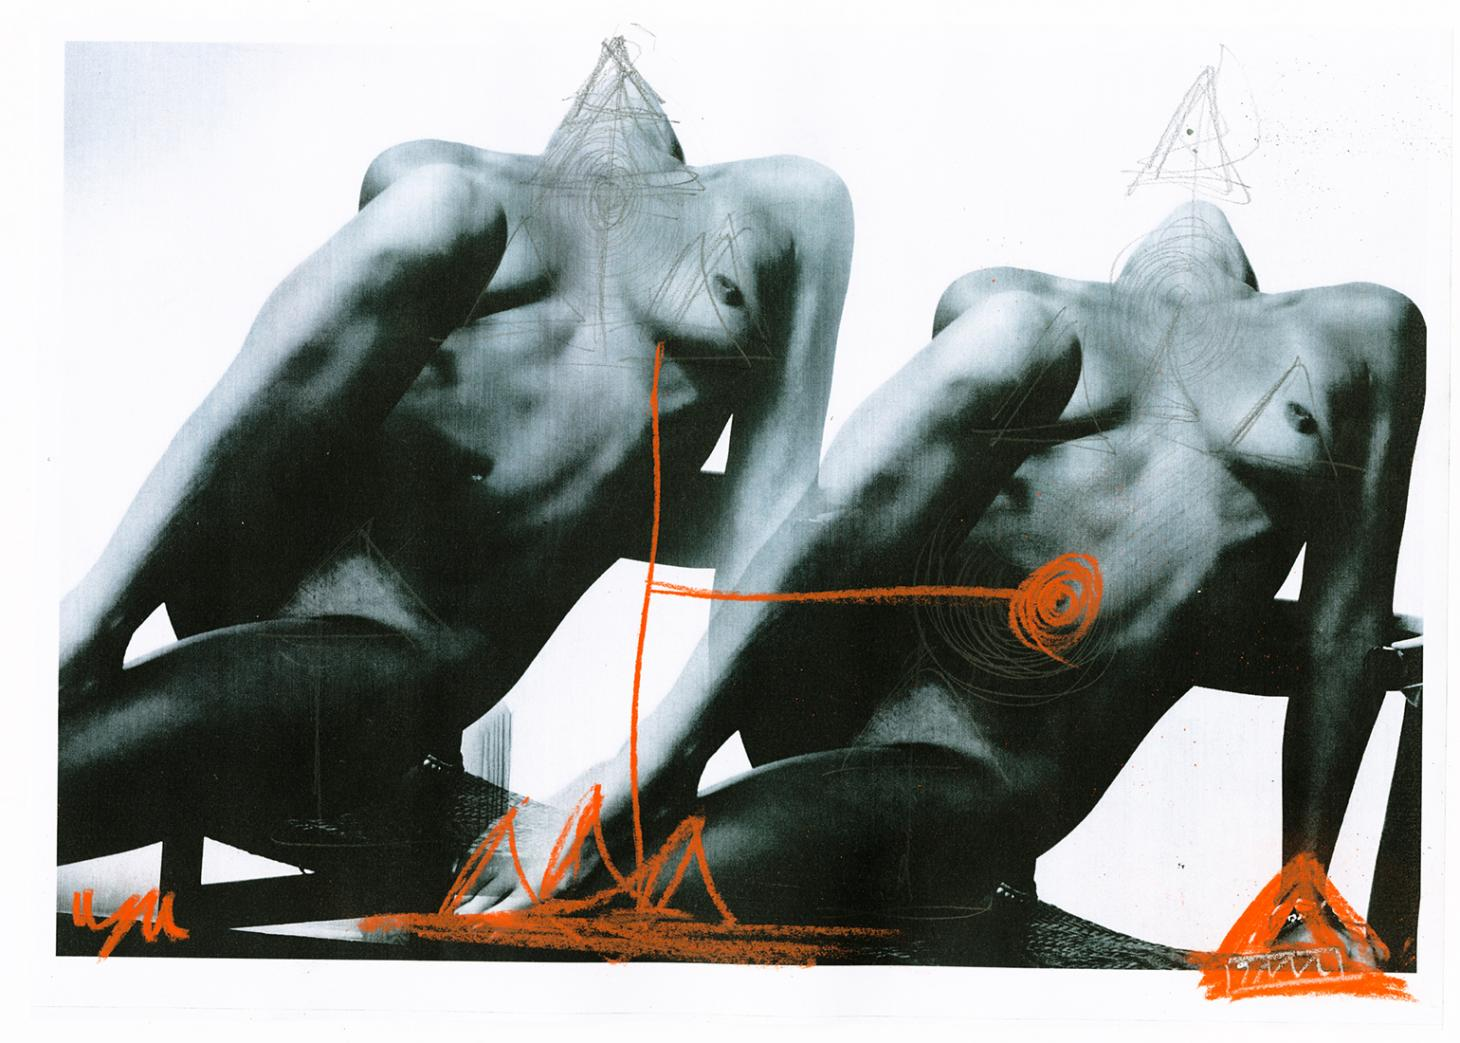 Lea Colombo image of black and white bodies with red drawings from Colours of My Body